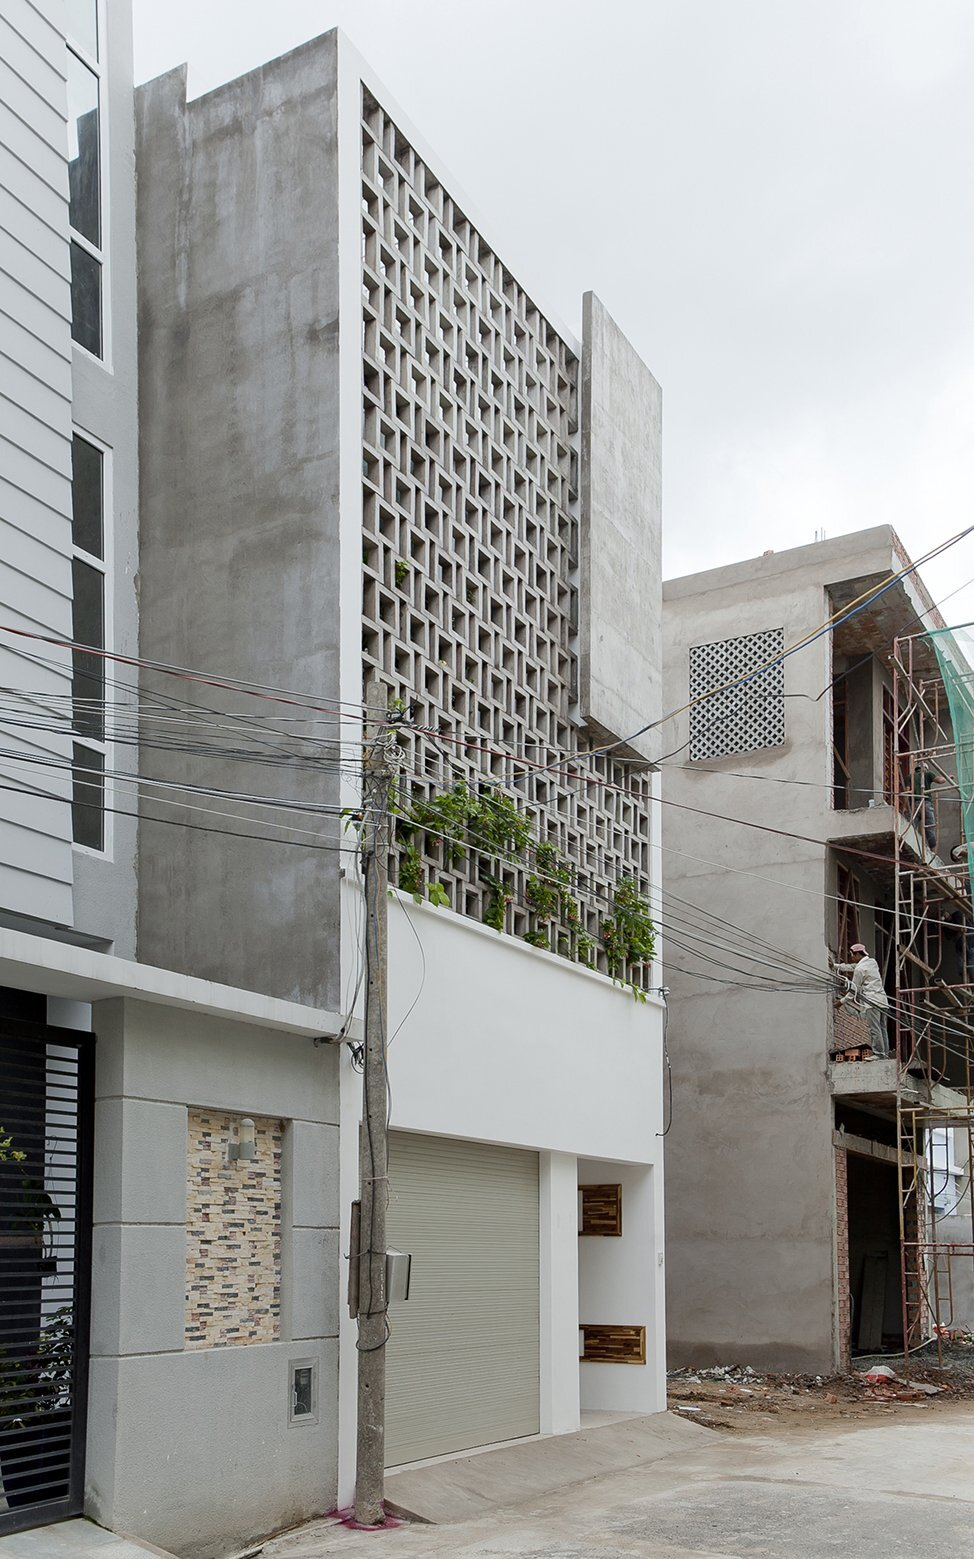 B House - Small House - i.House Architecture and Construction - Vietnam - Exterior - Humble Homes